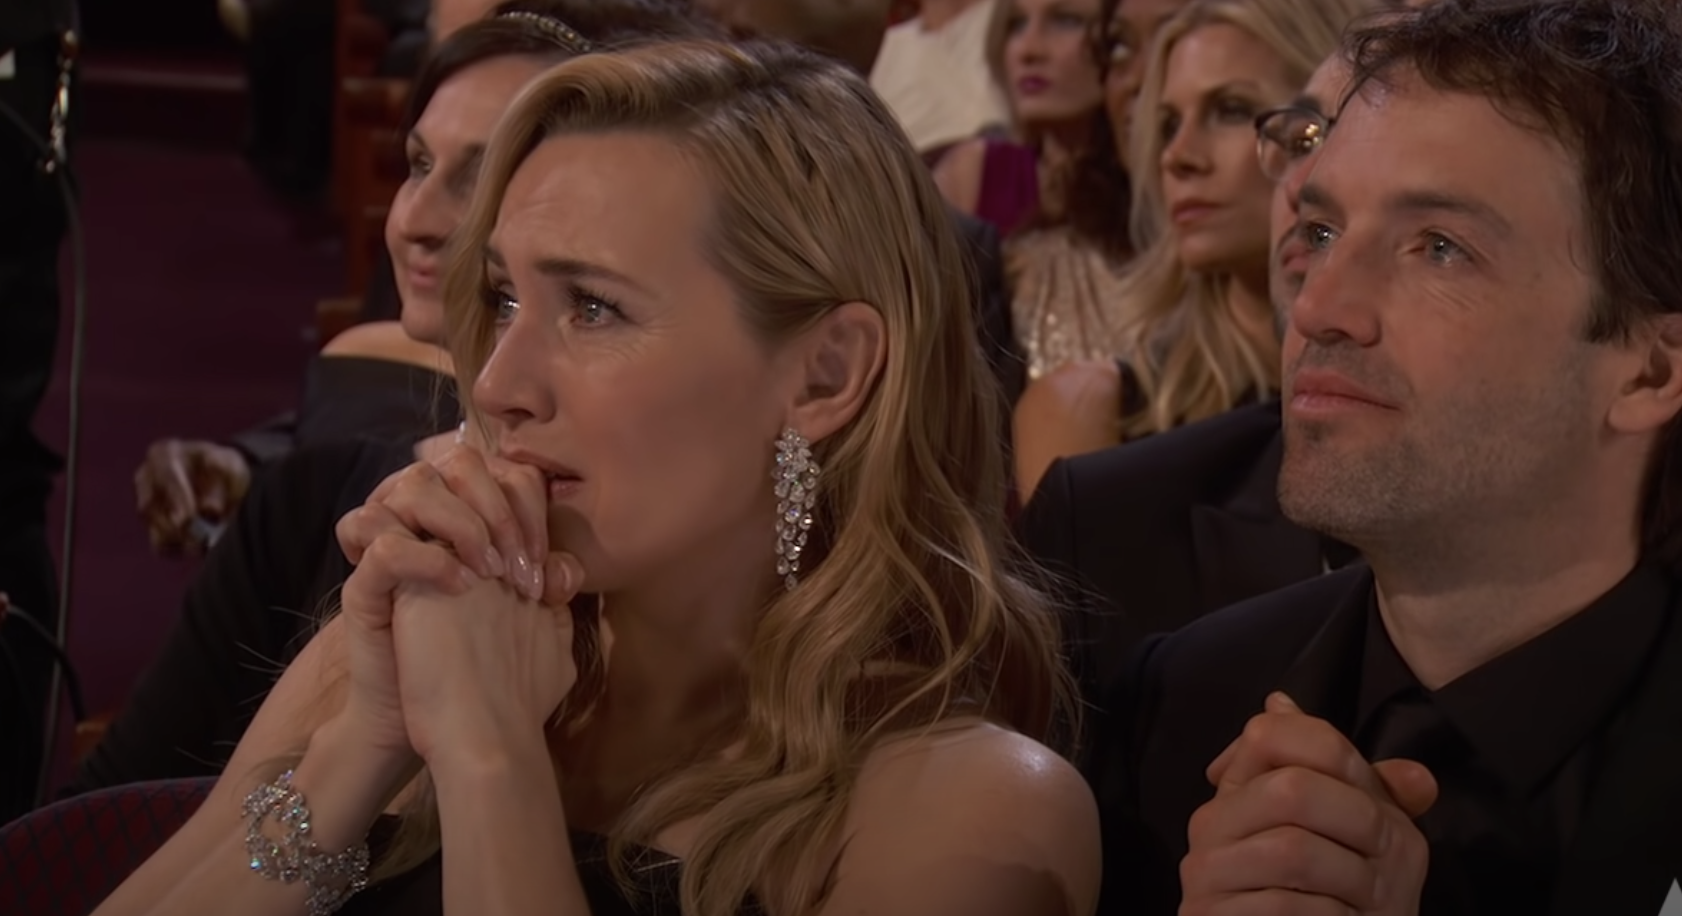 Kate clasping her hands to her face